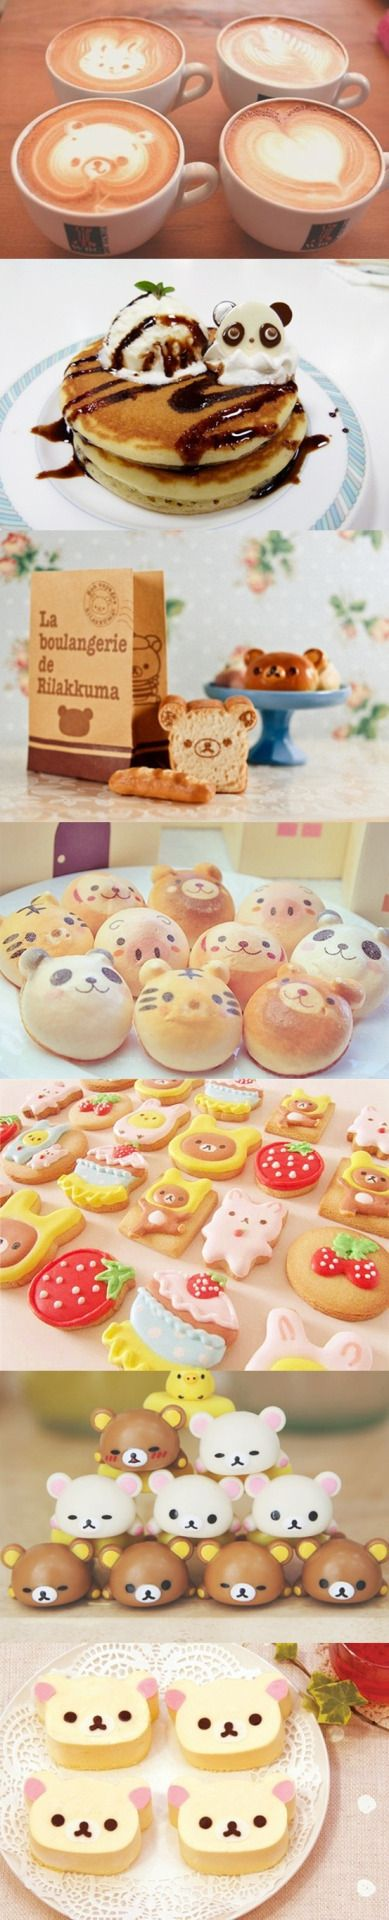 ❤ Blippo.com Kawaii Shop ❤ : Photo